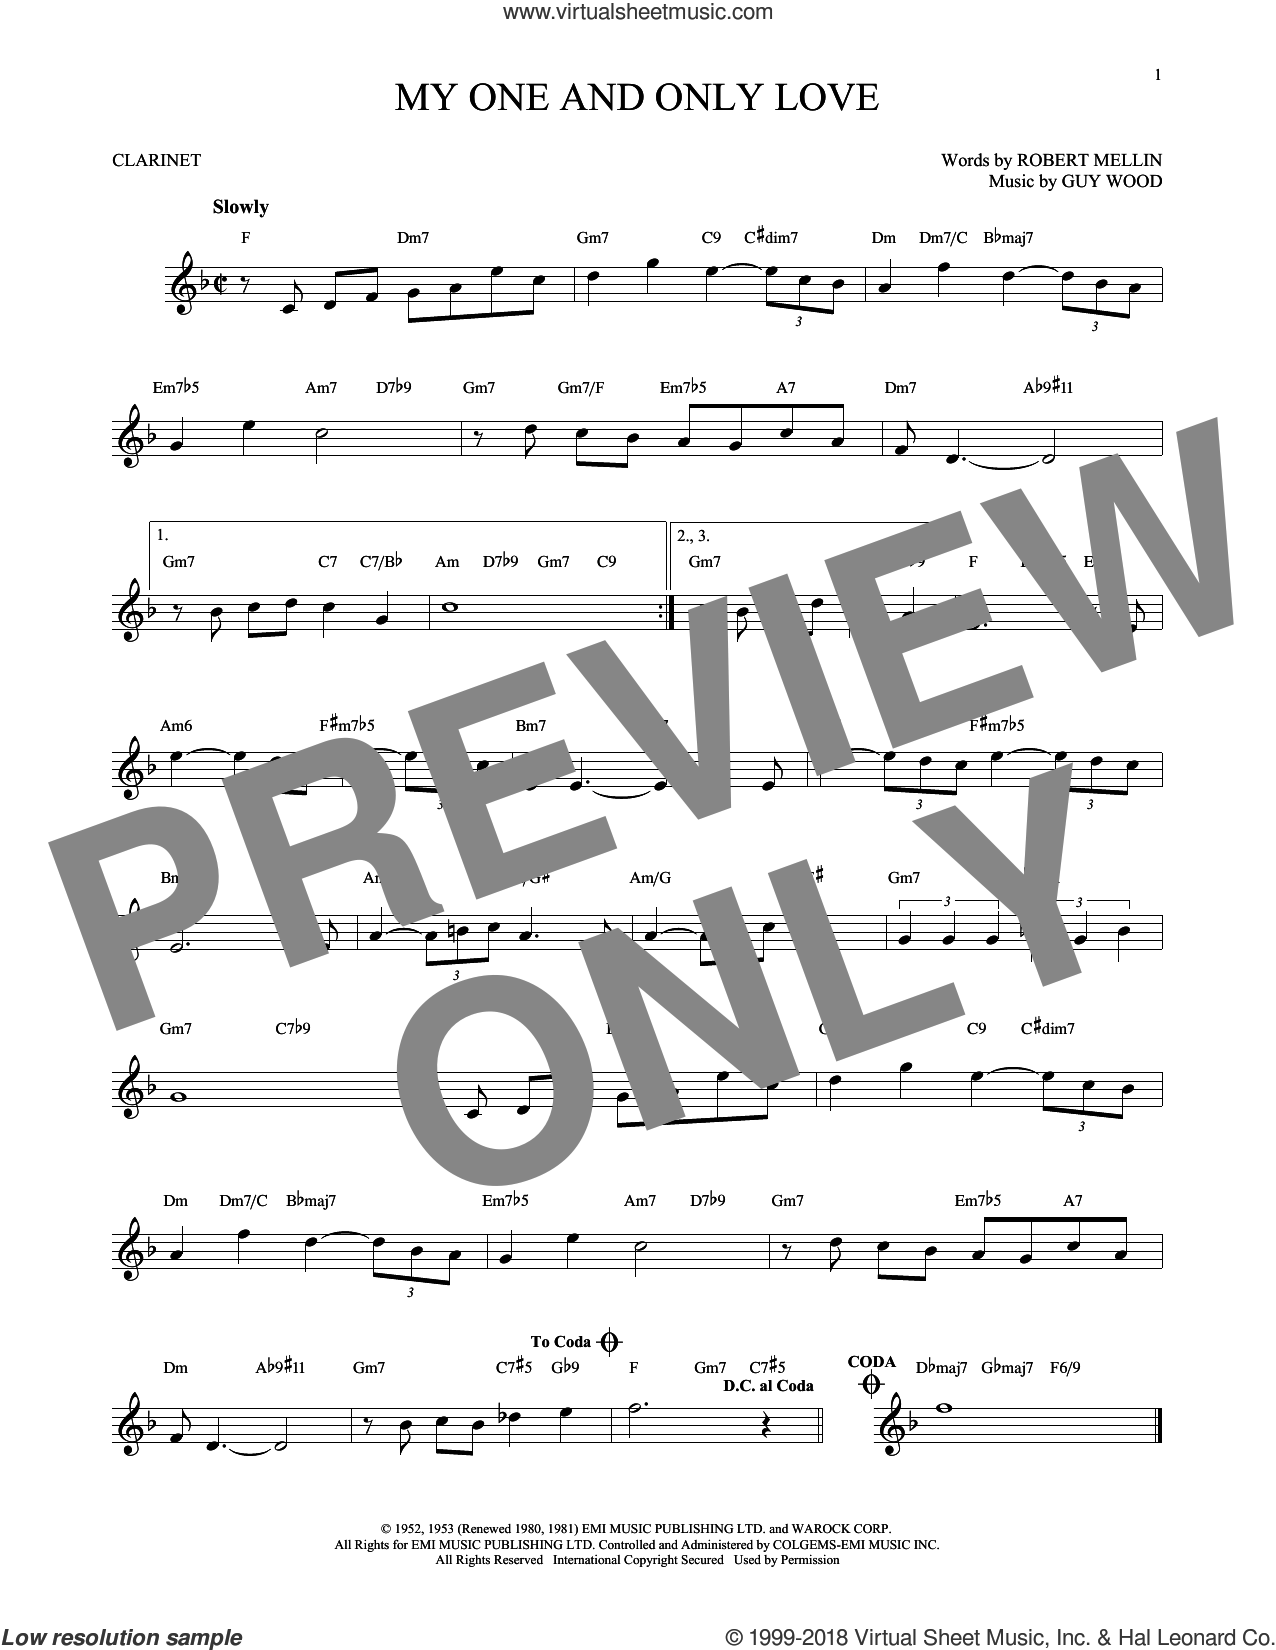 My One And Only Love sheet music for clarinet solo by Guy Wood and Robert Mellin, intermediate skill level